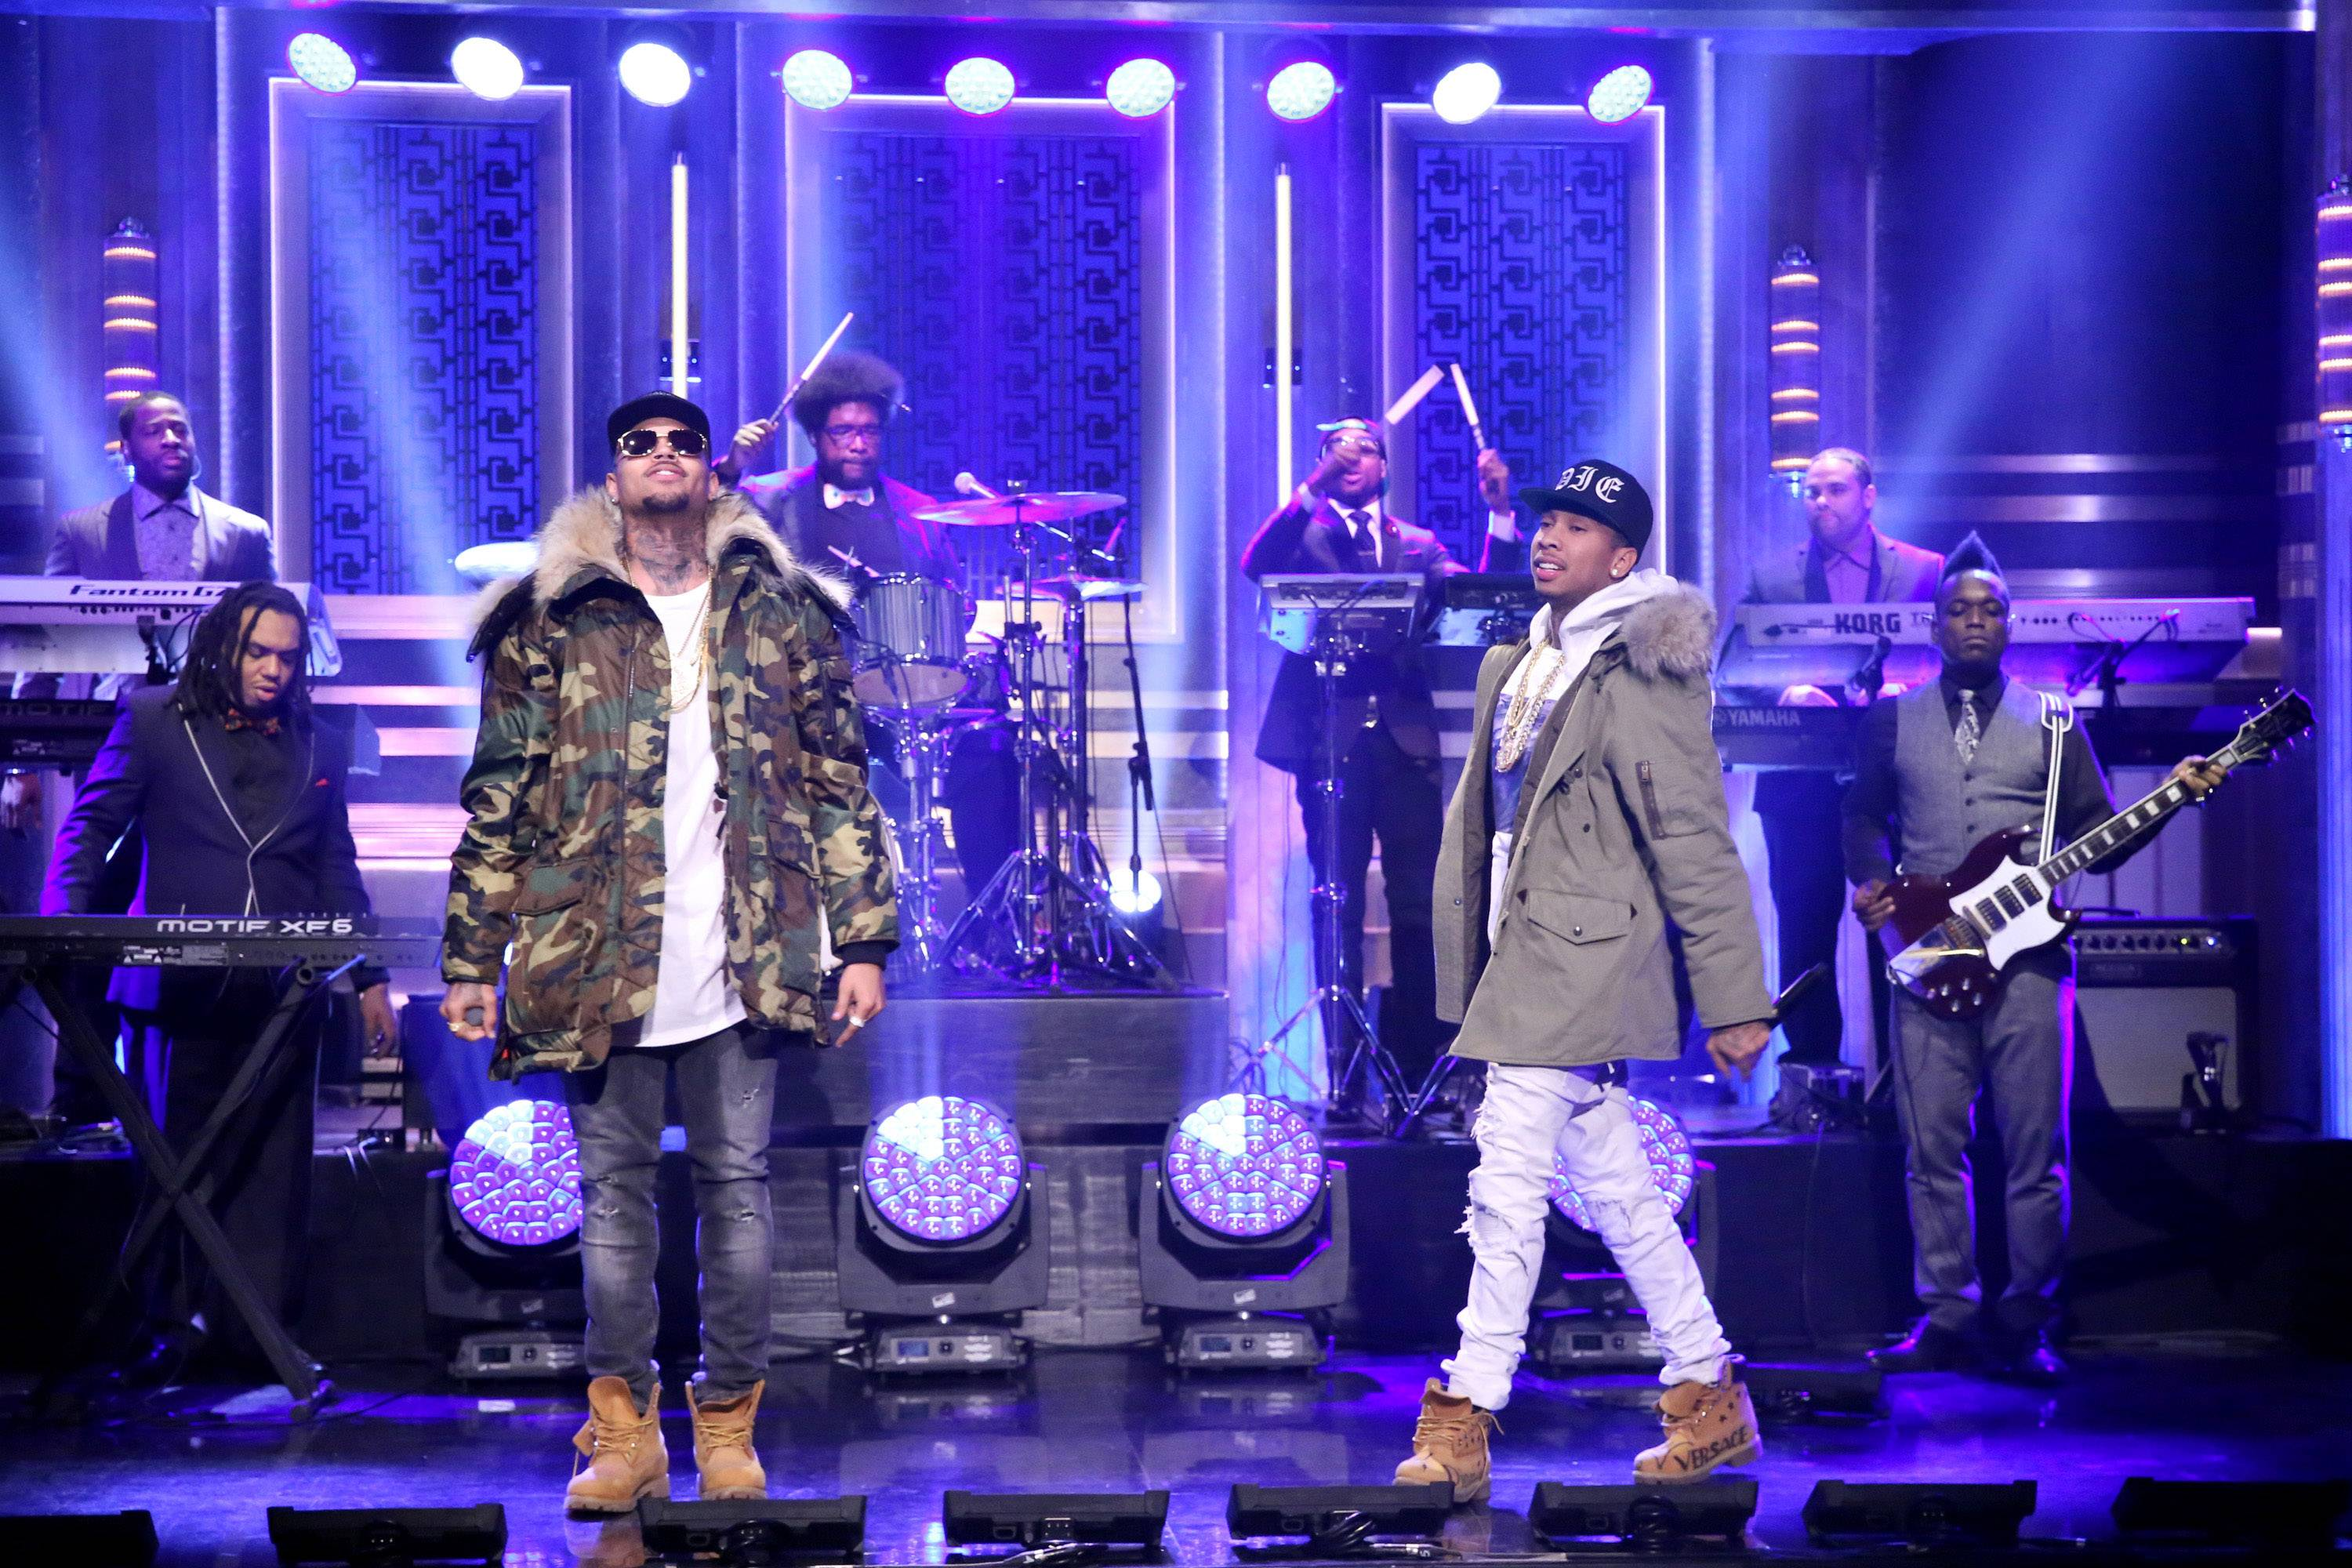 """'Remember Me' - Chris and his Compton homie got a thing for girls who like girls and promise nights to remember when the doors close. Tyga has no filter as he declares, """"She love a n***a and that p***y tight /Come through, f**k you all night.""""(Photo: Douglas Gorenstein/NBC/NBCU Photo Bank via Getty Images)"""